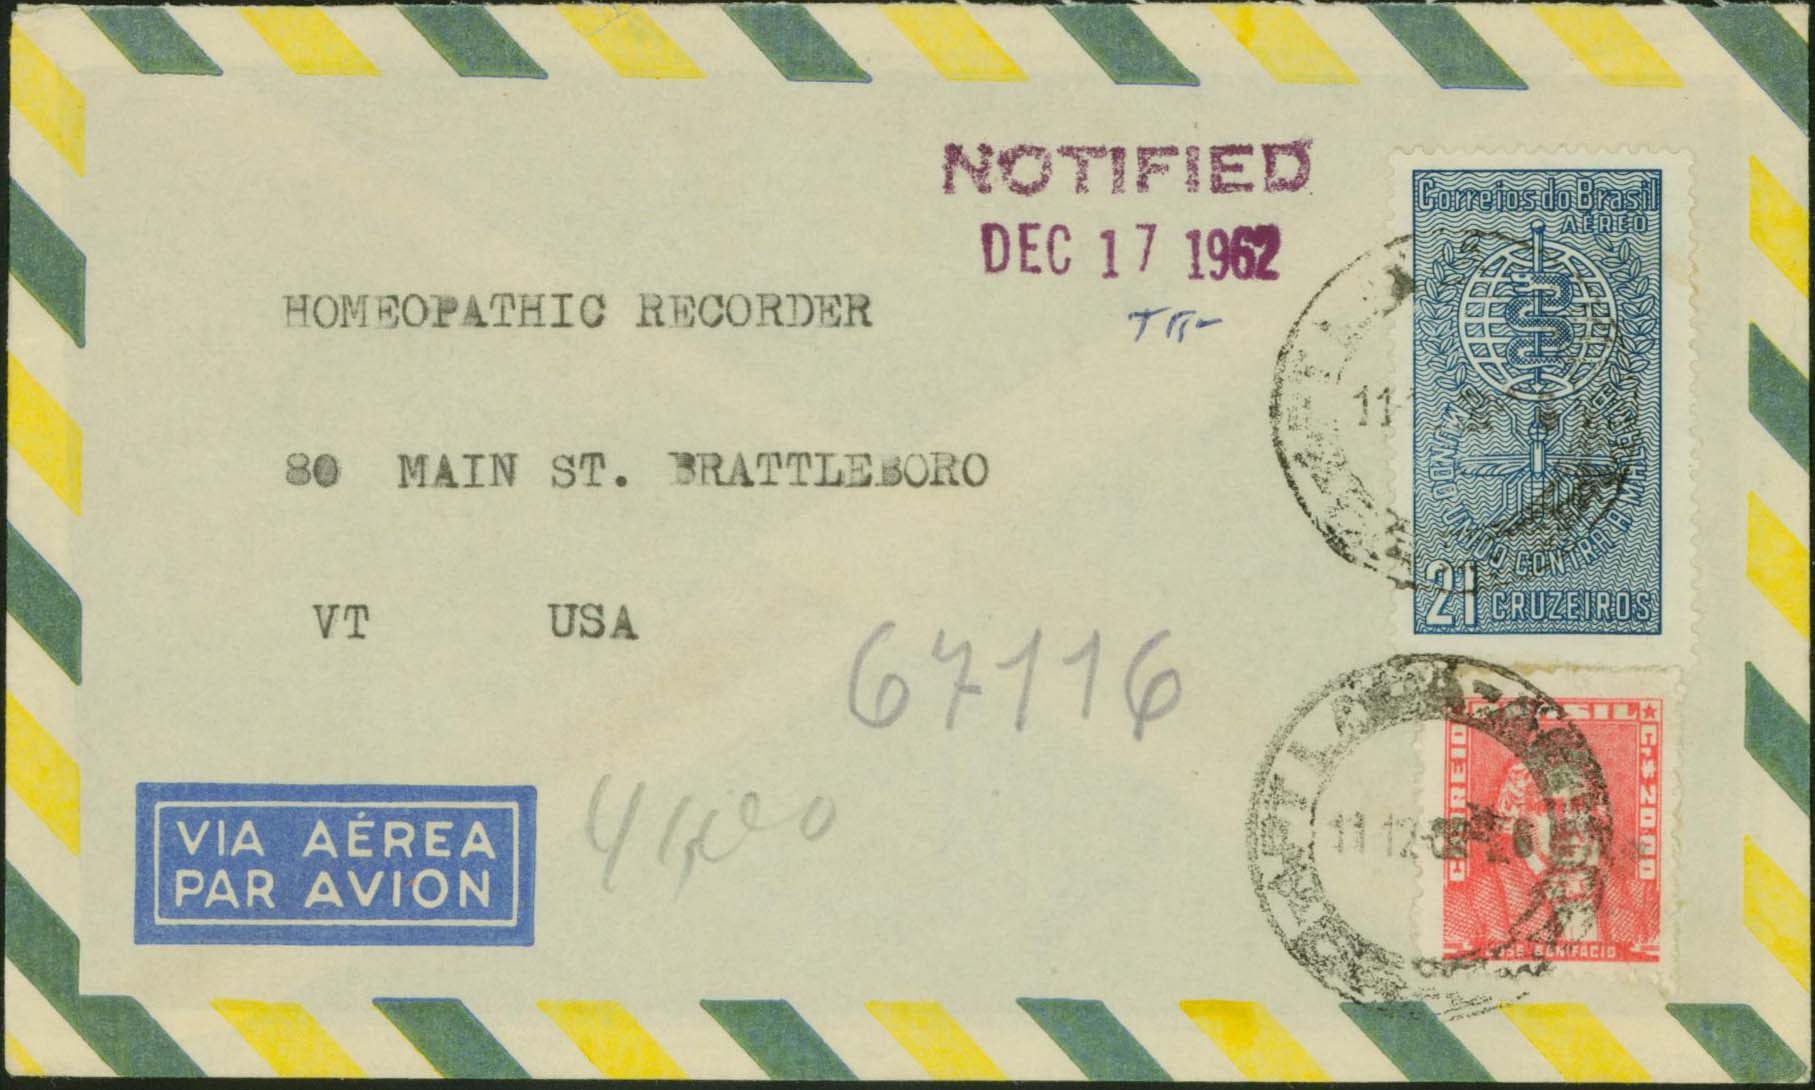 Brazil - Scott 106 - 1962/12/11 to the United States (w/ Notified marking)